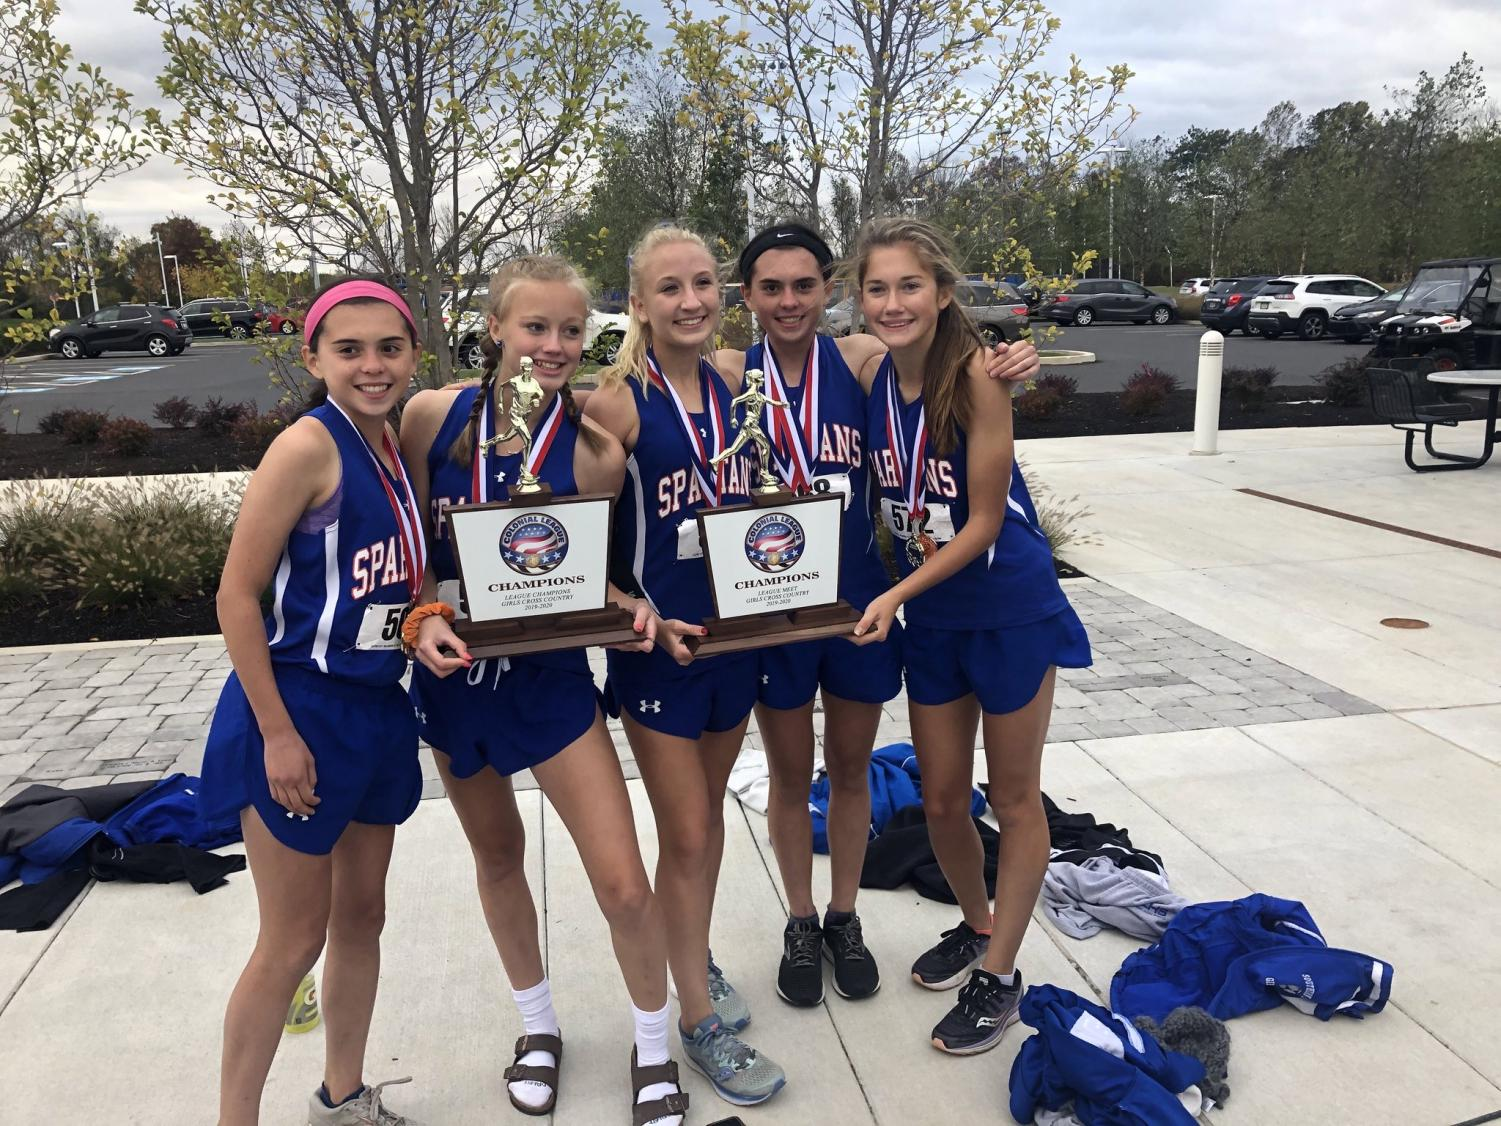 The top girls cross country runners proudly display their trophies after winning the Colonial League Championship.